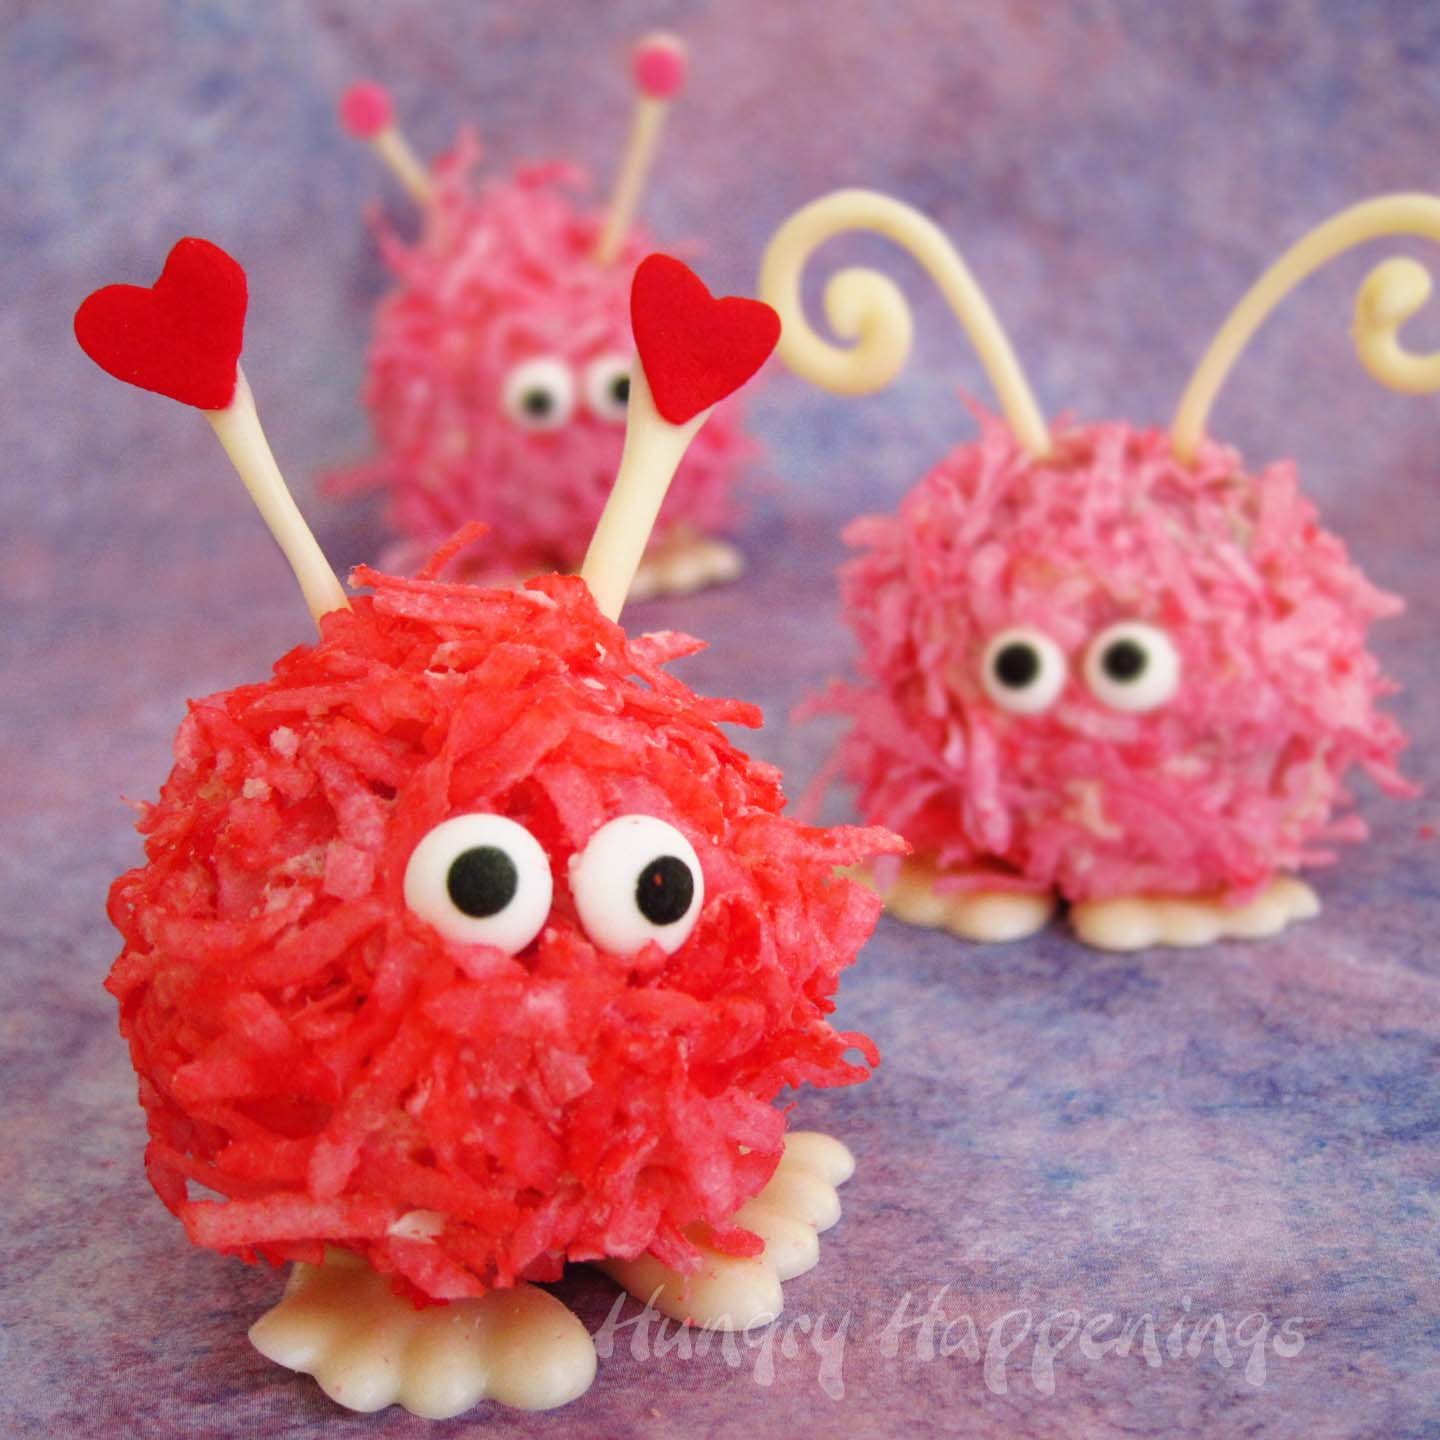 Warm Fuzzy Cake Balls And Cupcakes Valentine S Day Recipes Hungry